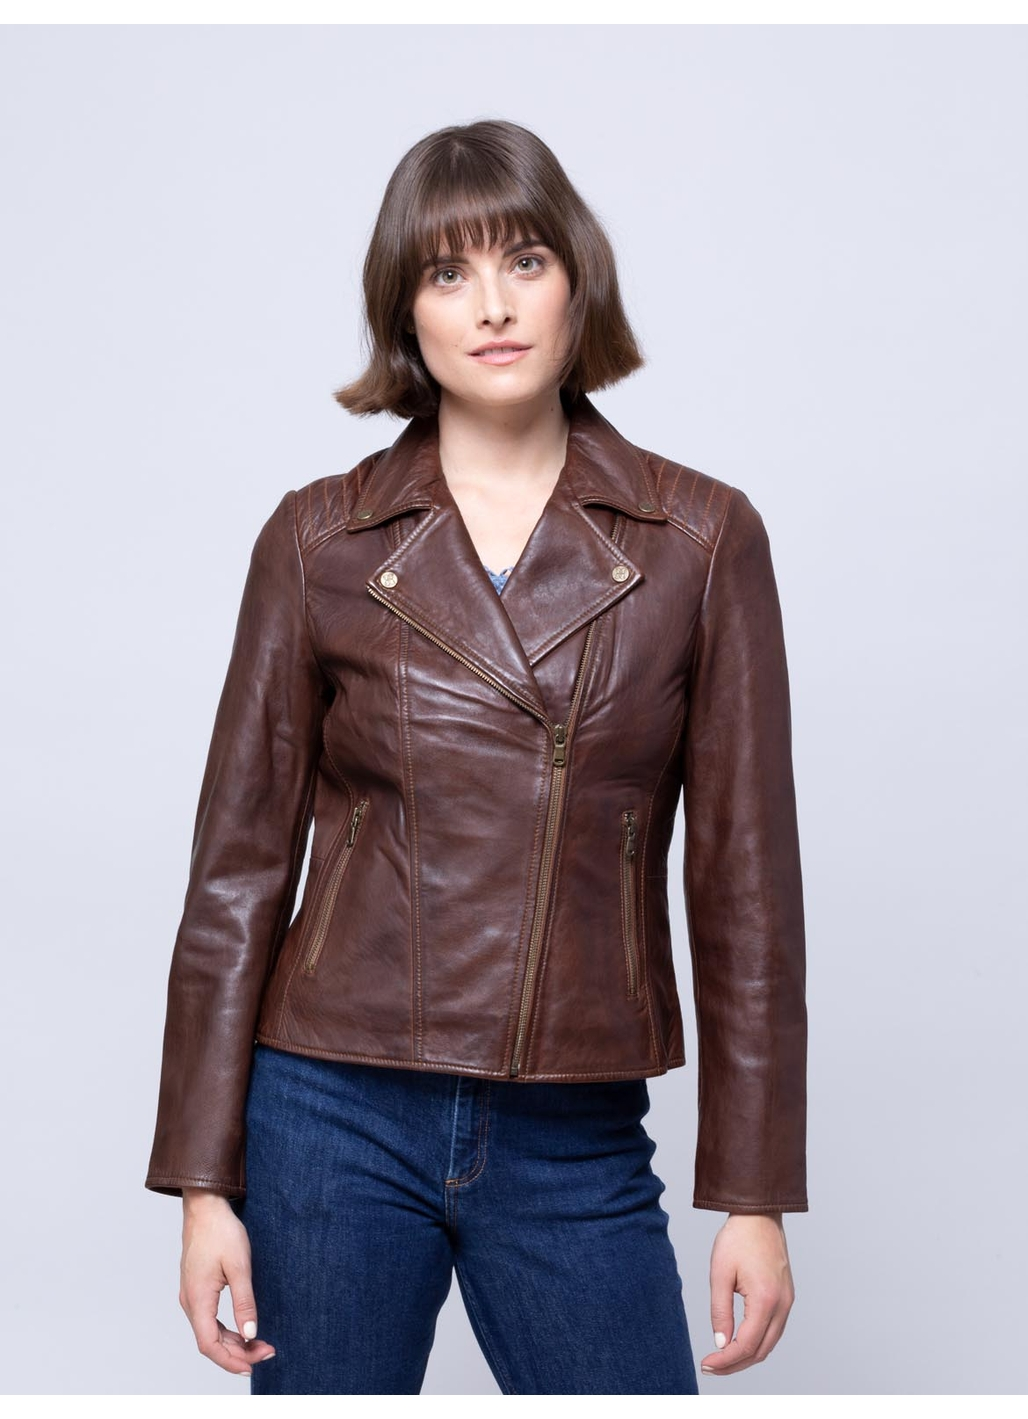 Thursby Vegetable Tanned Leather Biker Jacket in Tan